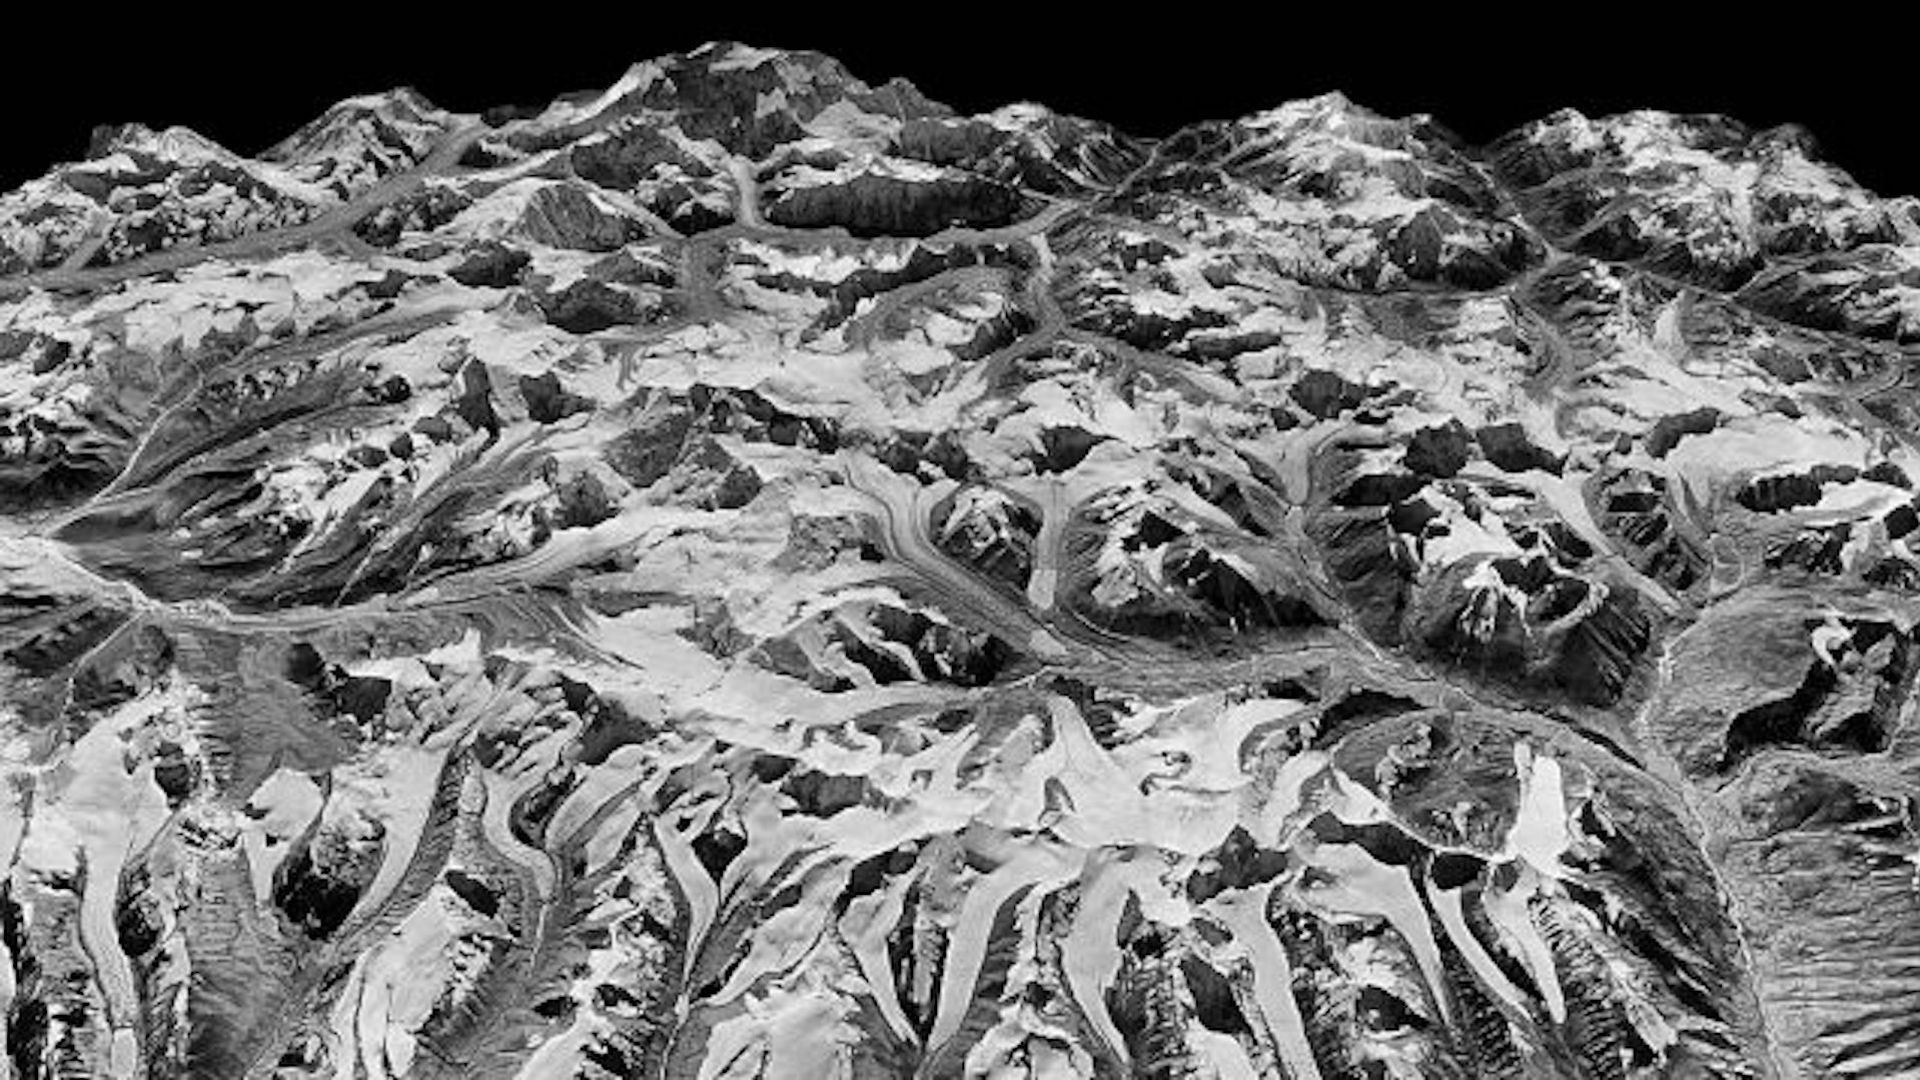 Oblique view of the Himalayas on the border of Sikkim, India and eastern Nepal, in 1975.